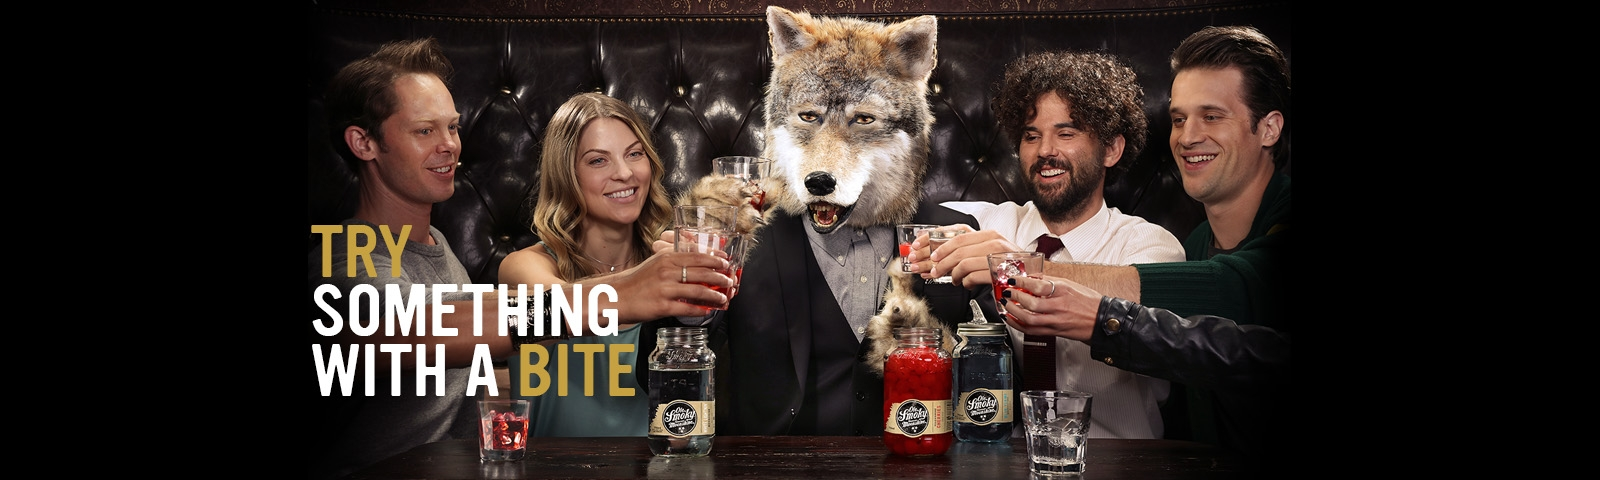 Wolf_Something with a bite